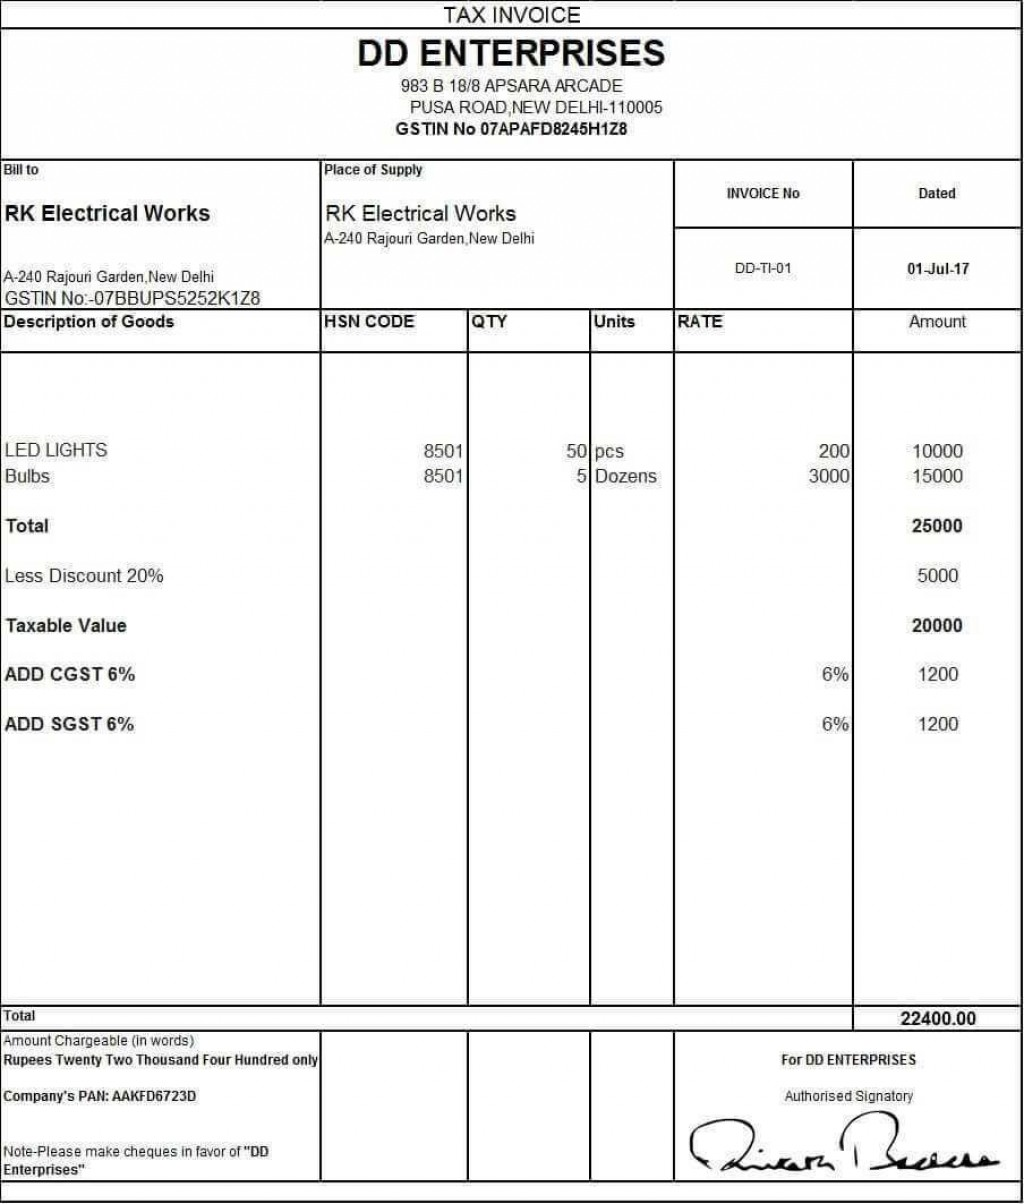 000 Staggering Sample Tax Invoice Excel Download Image Large